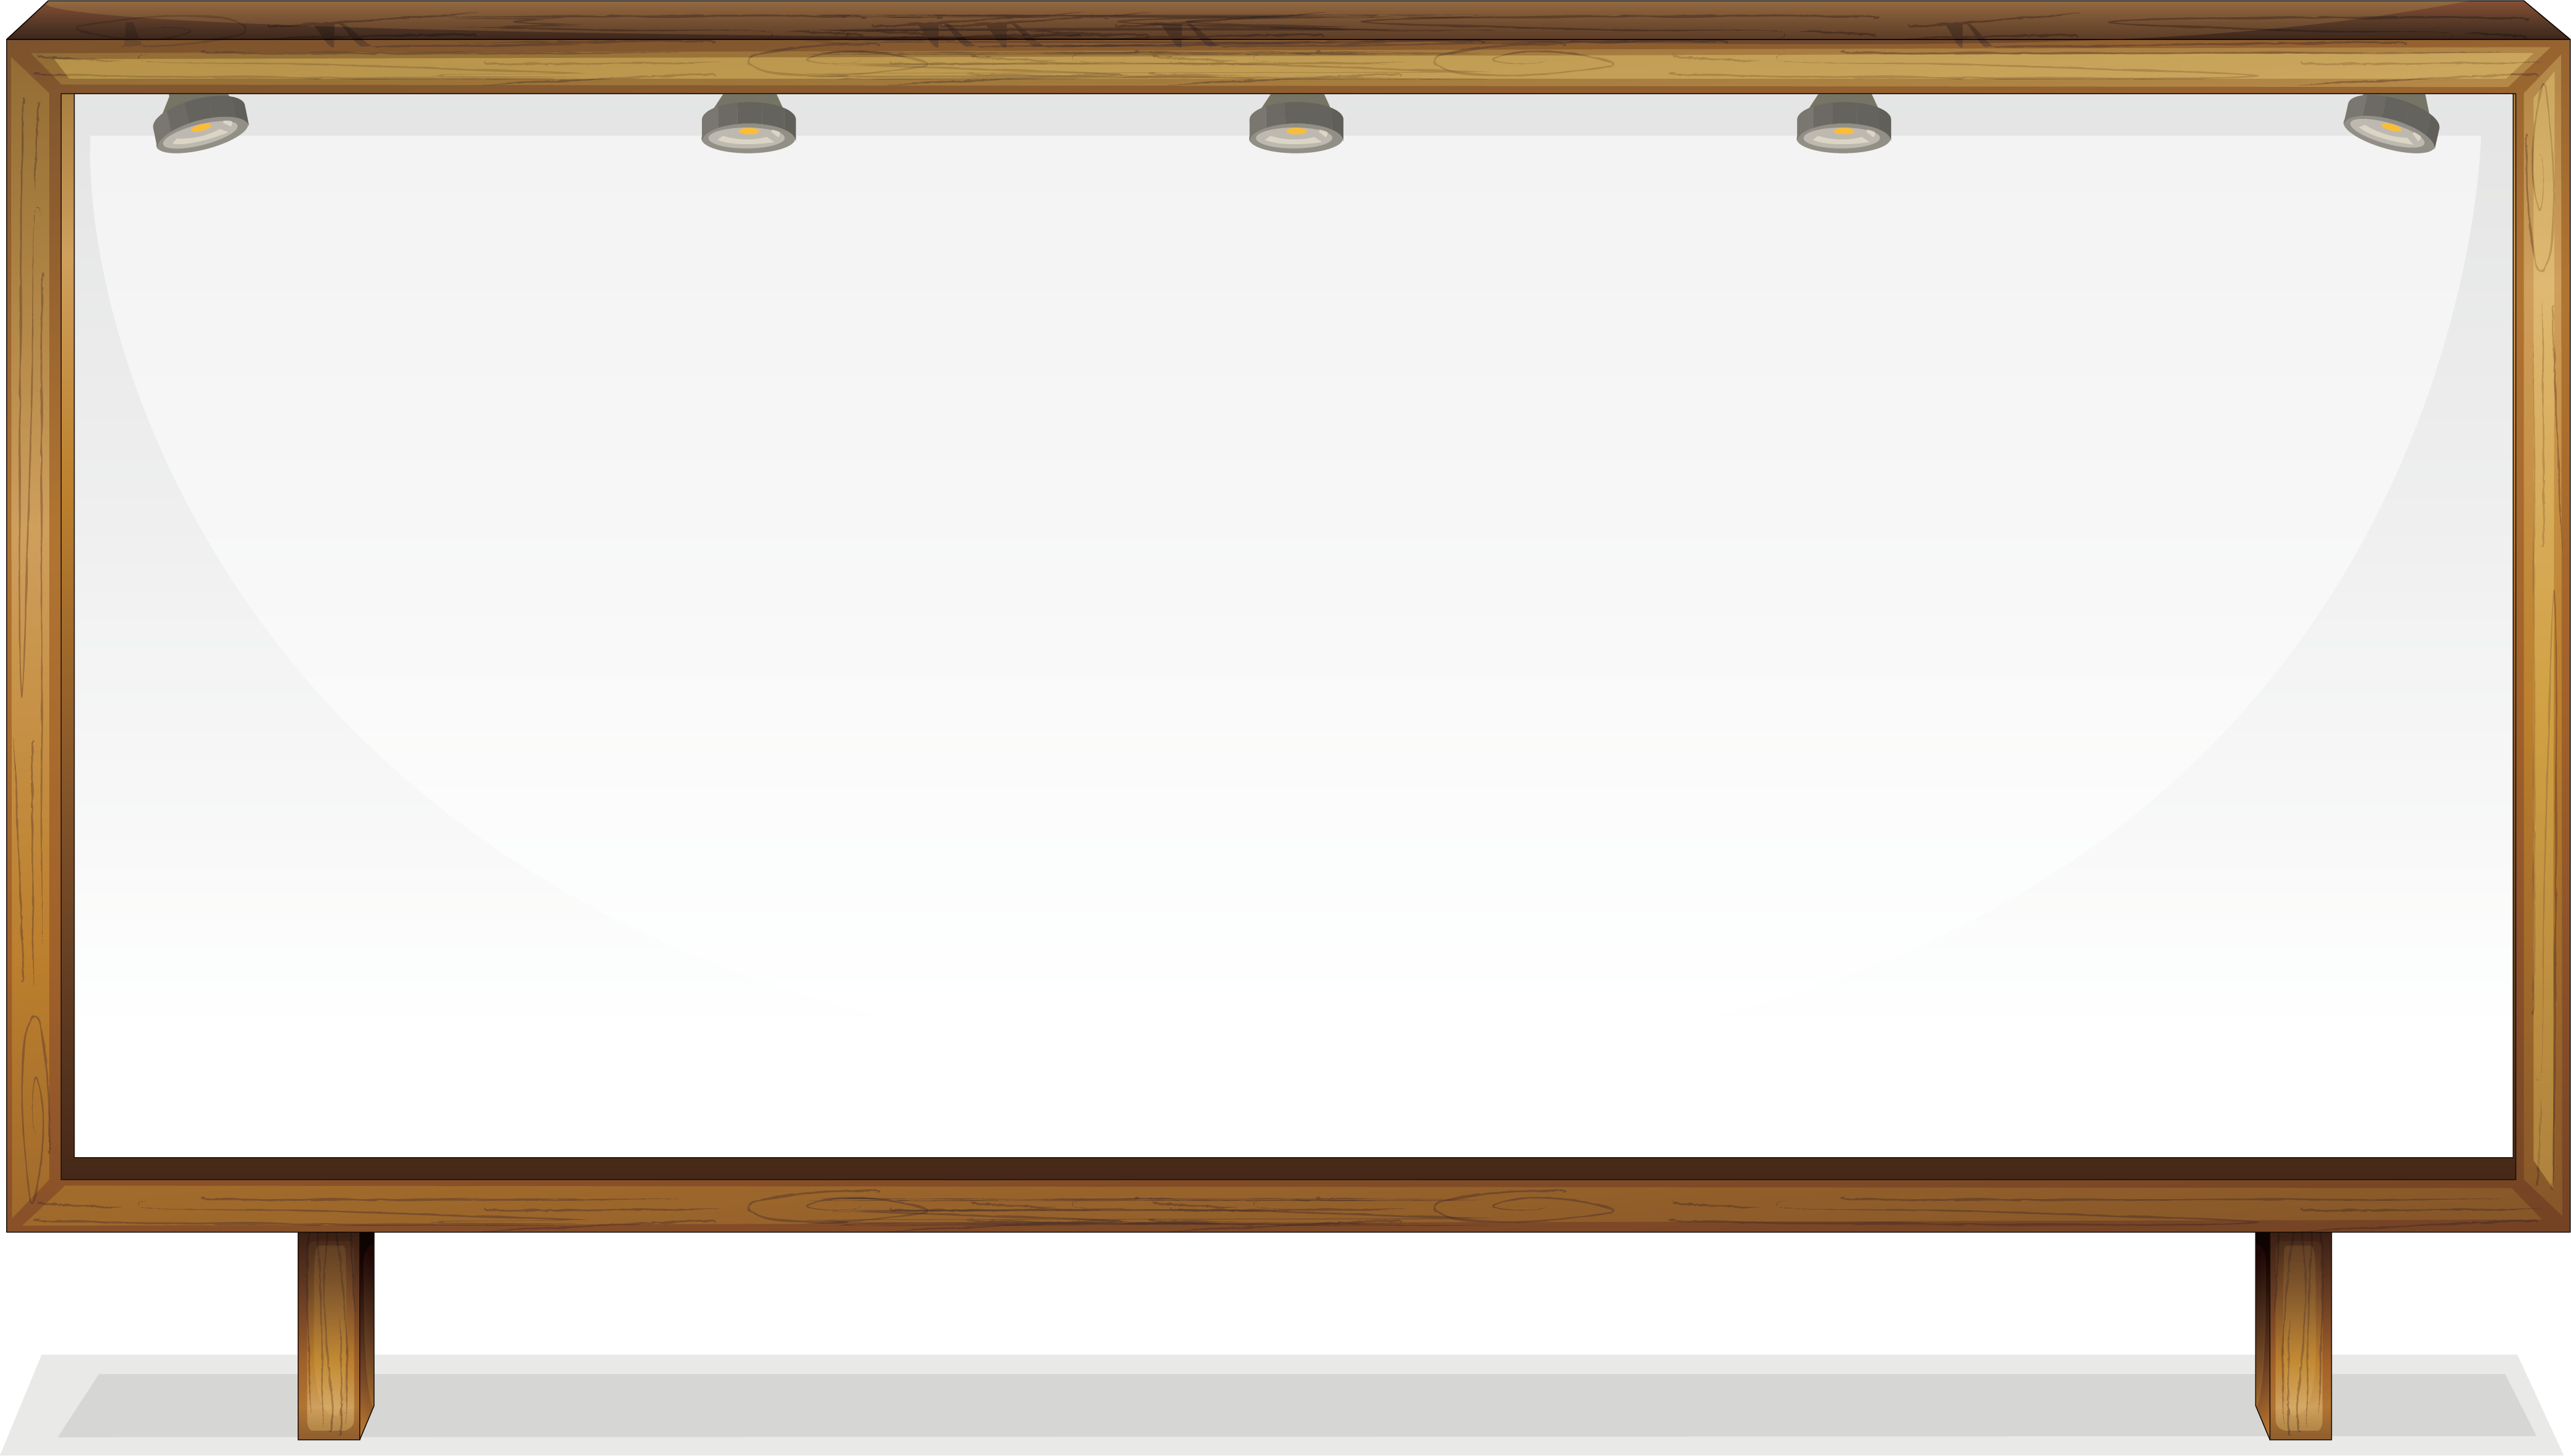 Whiteboard vector frame png. Angle picture lights under